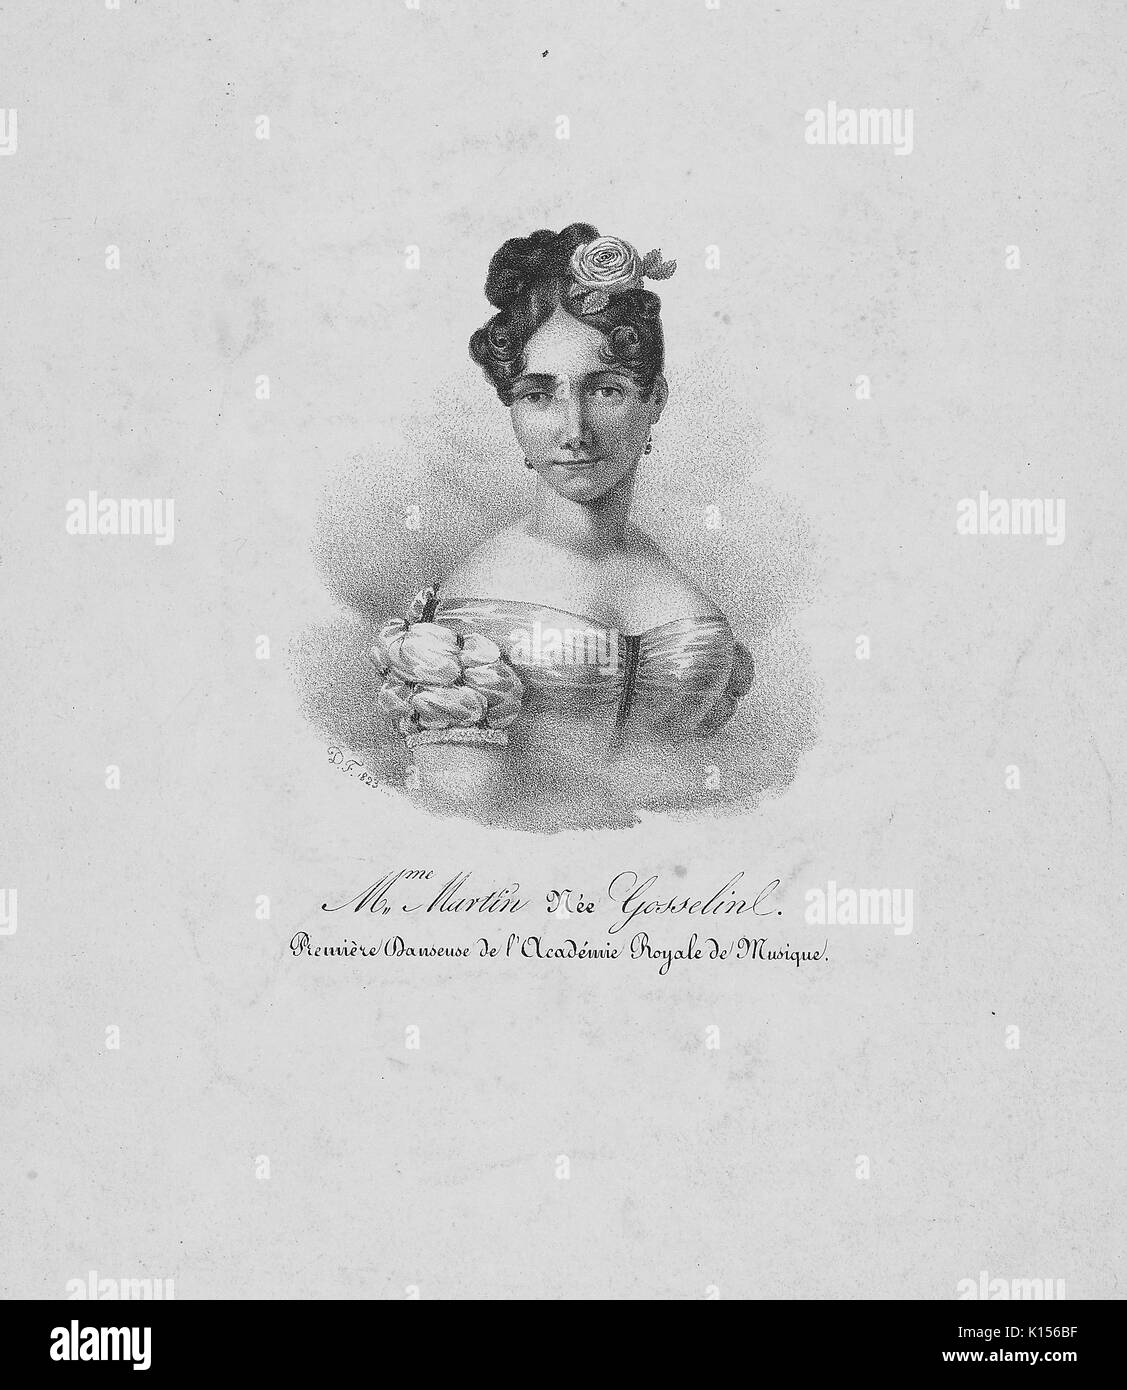 Madame Martin (nee Gosselin), portrait, with original French caption reading 'premiere danseuse de l'Academie royale de musique', translated 'Premiere Dancer of the Royal Academy of Music', 1823. From the New York Public Library. - Stock Image